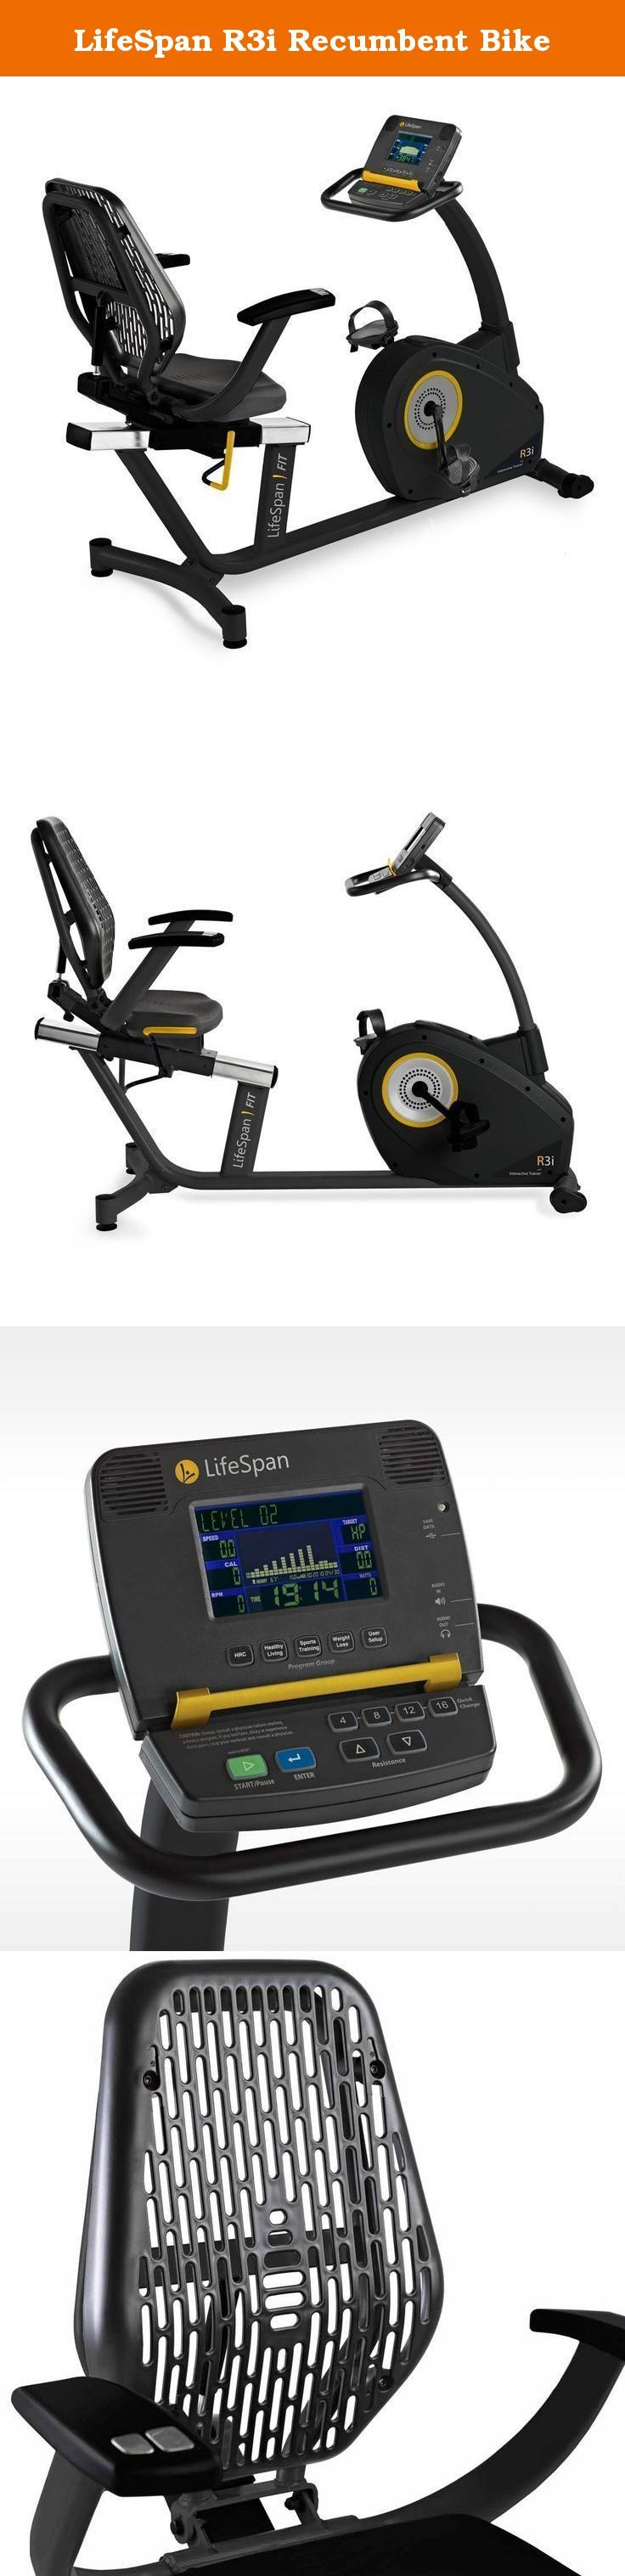 LifeSpan R3i Recumbent Bike. The R3i Recumbent Bike features a spacious step-thru design allowing you get on and off the bike with ease. The bike also offers horizontally adjustable seats with full back support and holds riders up to 400 pounds. The bike